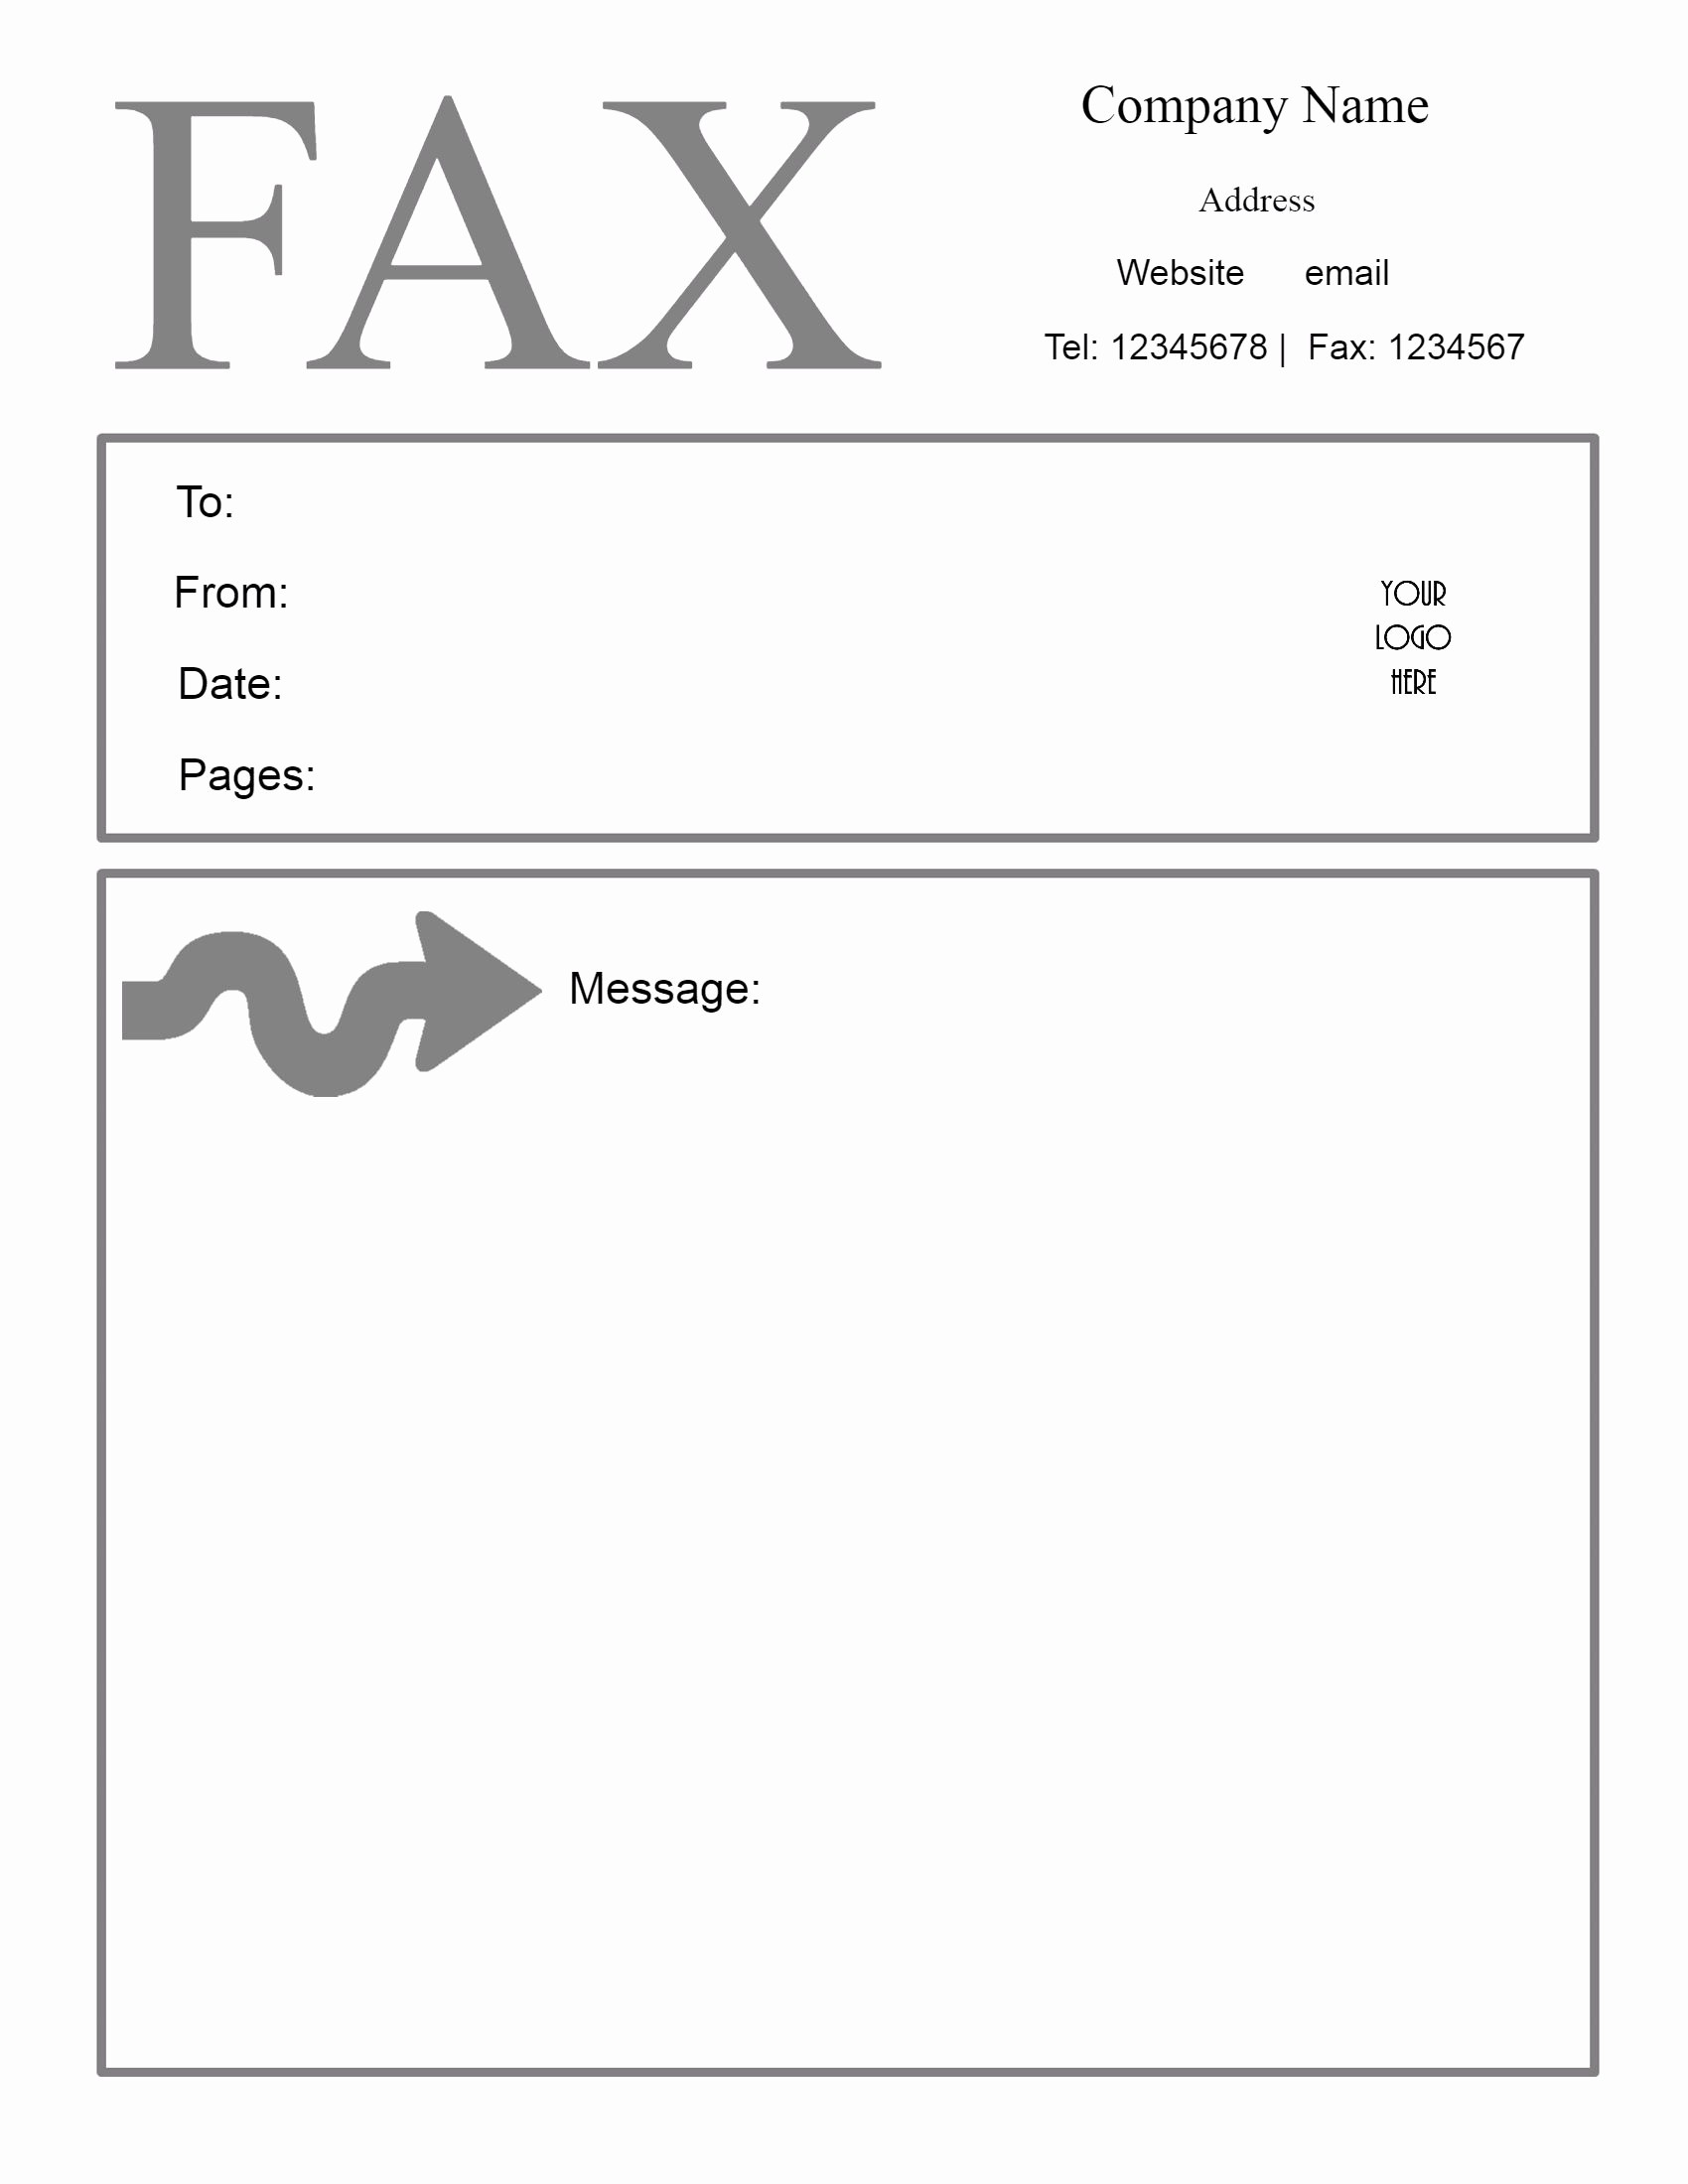 Printable Free Fax Cover Sheet Lovely Free Fax Cover Sheet Template